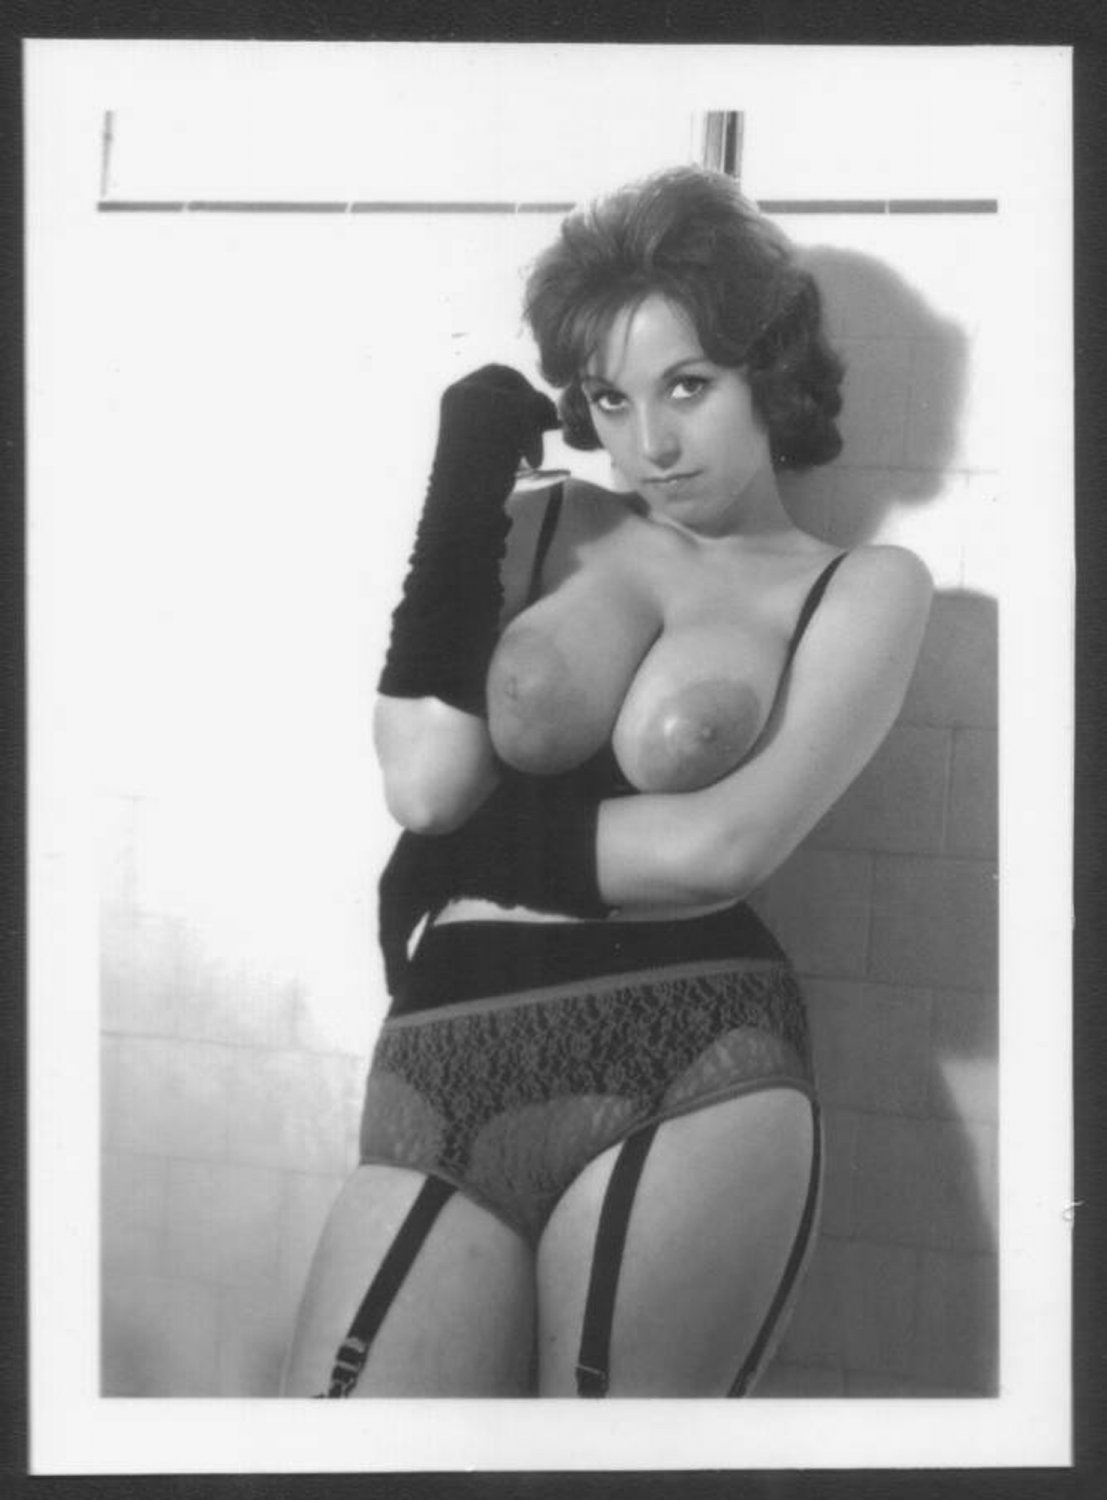 Julie Wills Williams Topless Nude Huge Heavy Hanging Breasts New Reprint X Jw